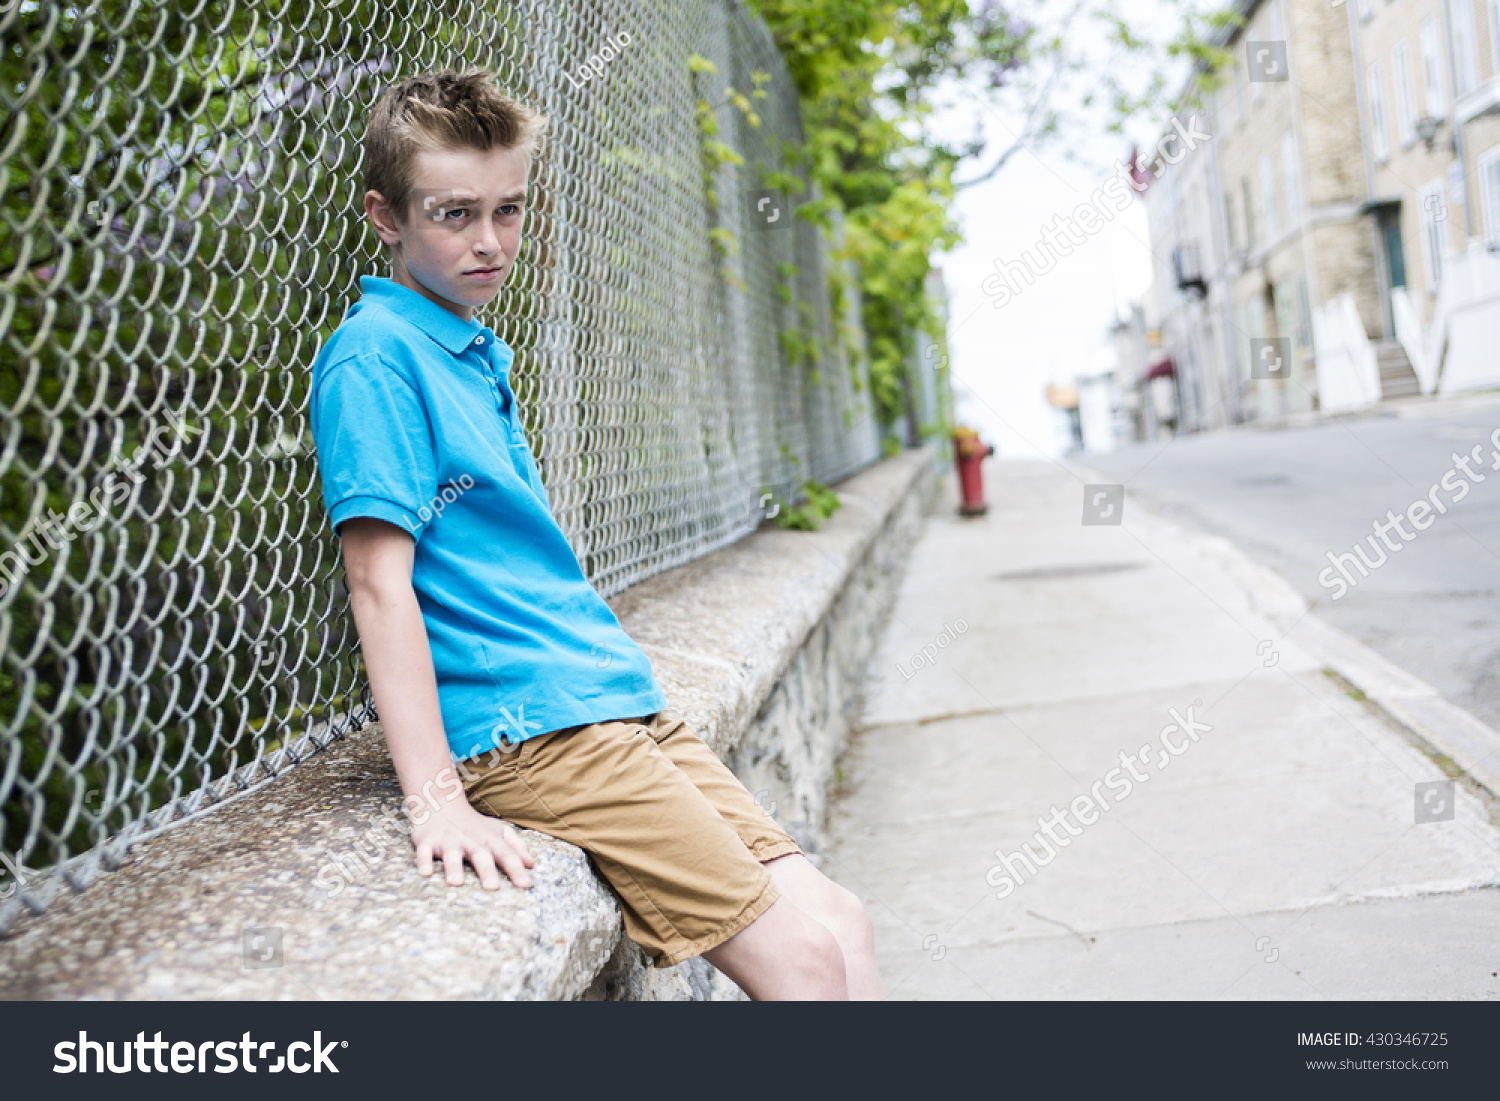 Young Teen Boy Looking Out Fence Stock Photo (Edit Now ...